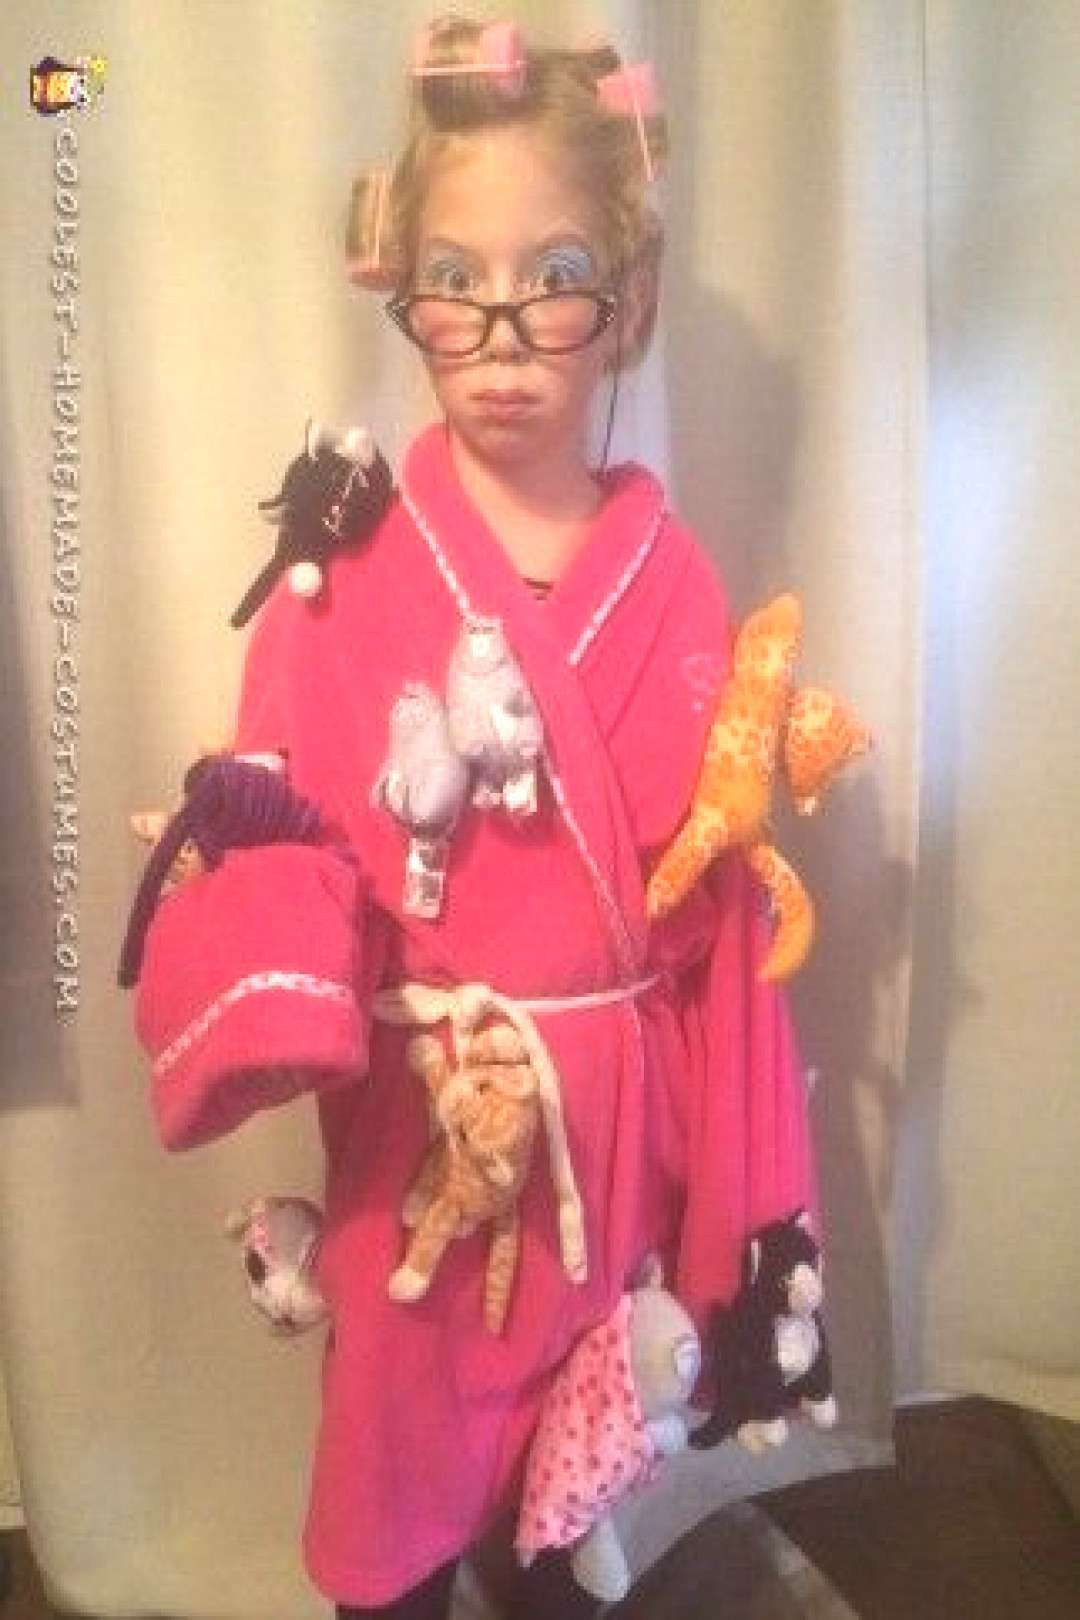 When my daughter said she wanted to be a Crazy Cat Lady I didnt know what she meant. But she was a